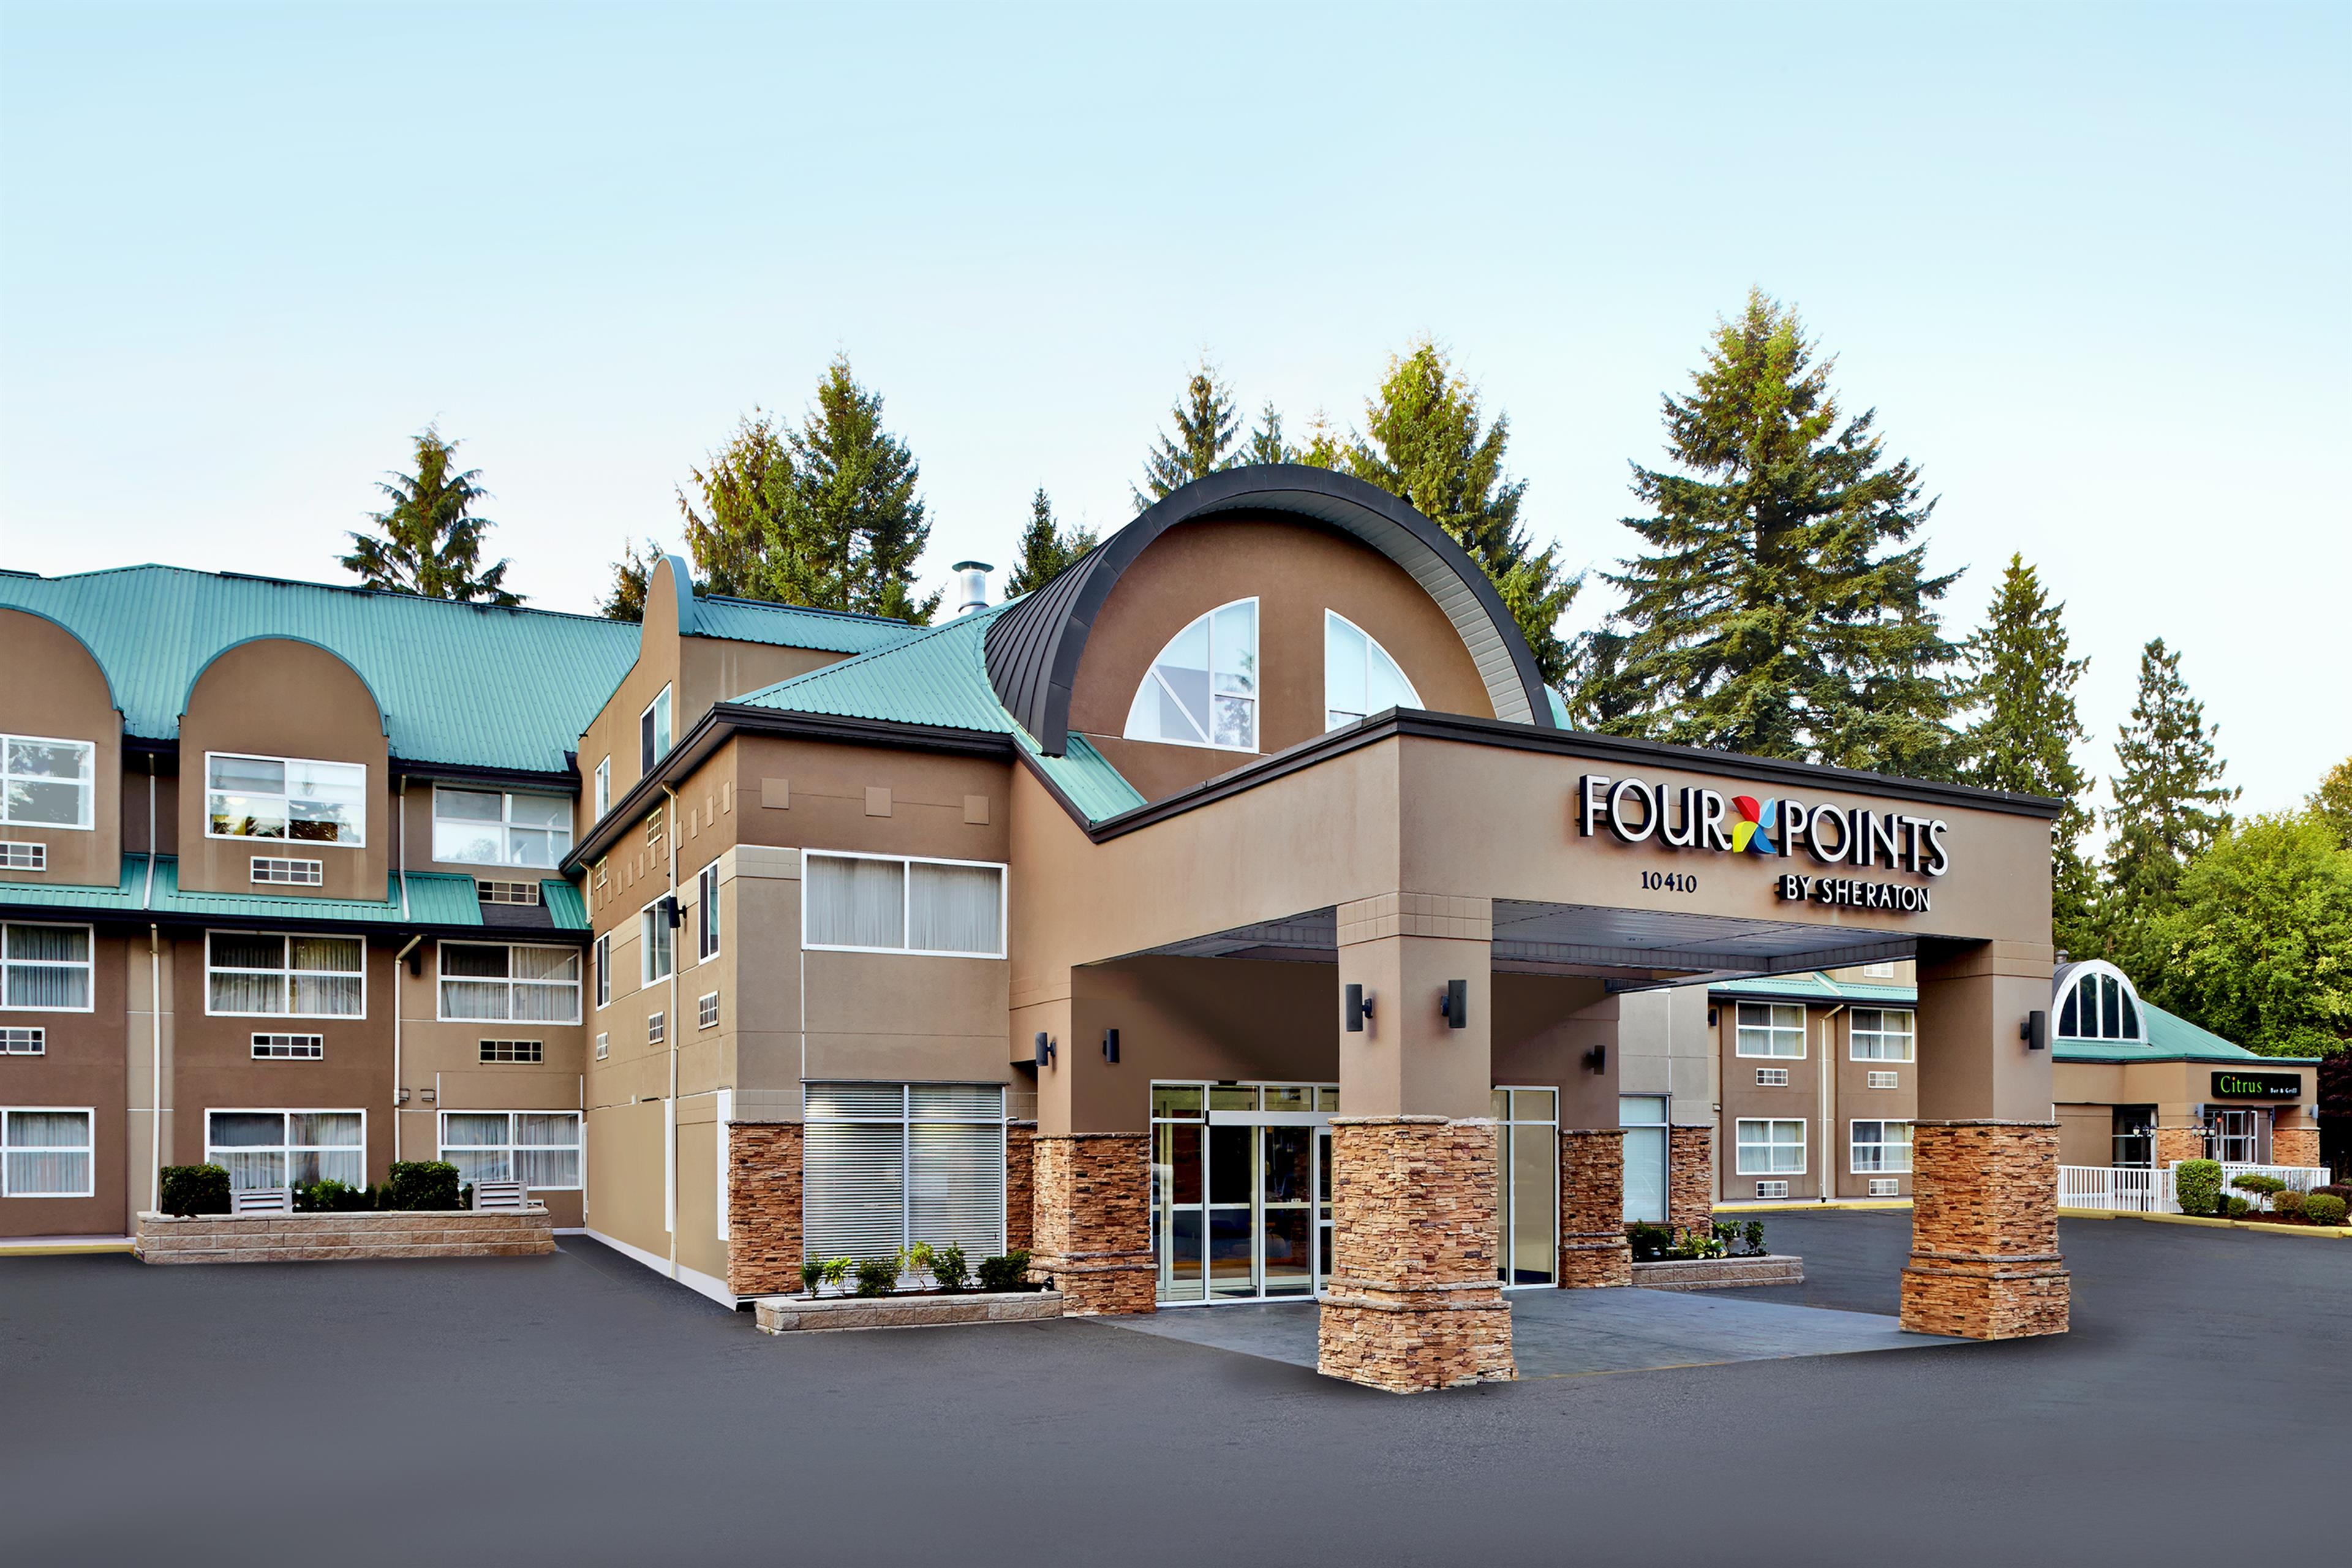 Days Inn Hotel Surrey Bc